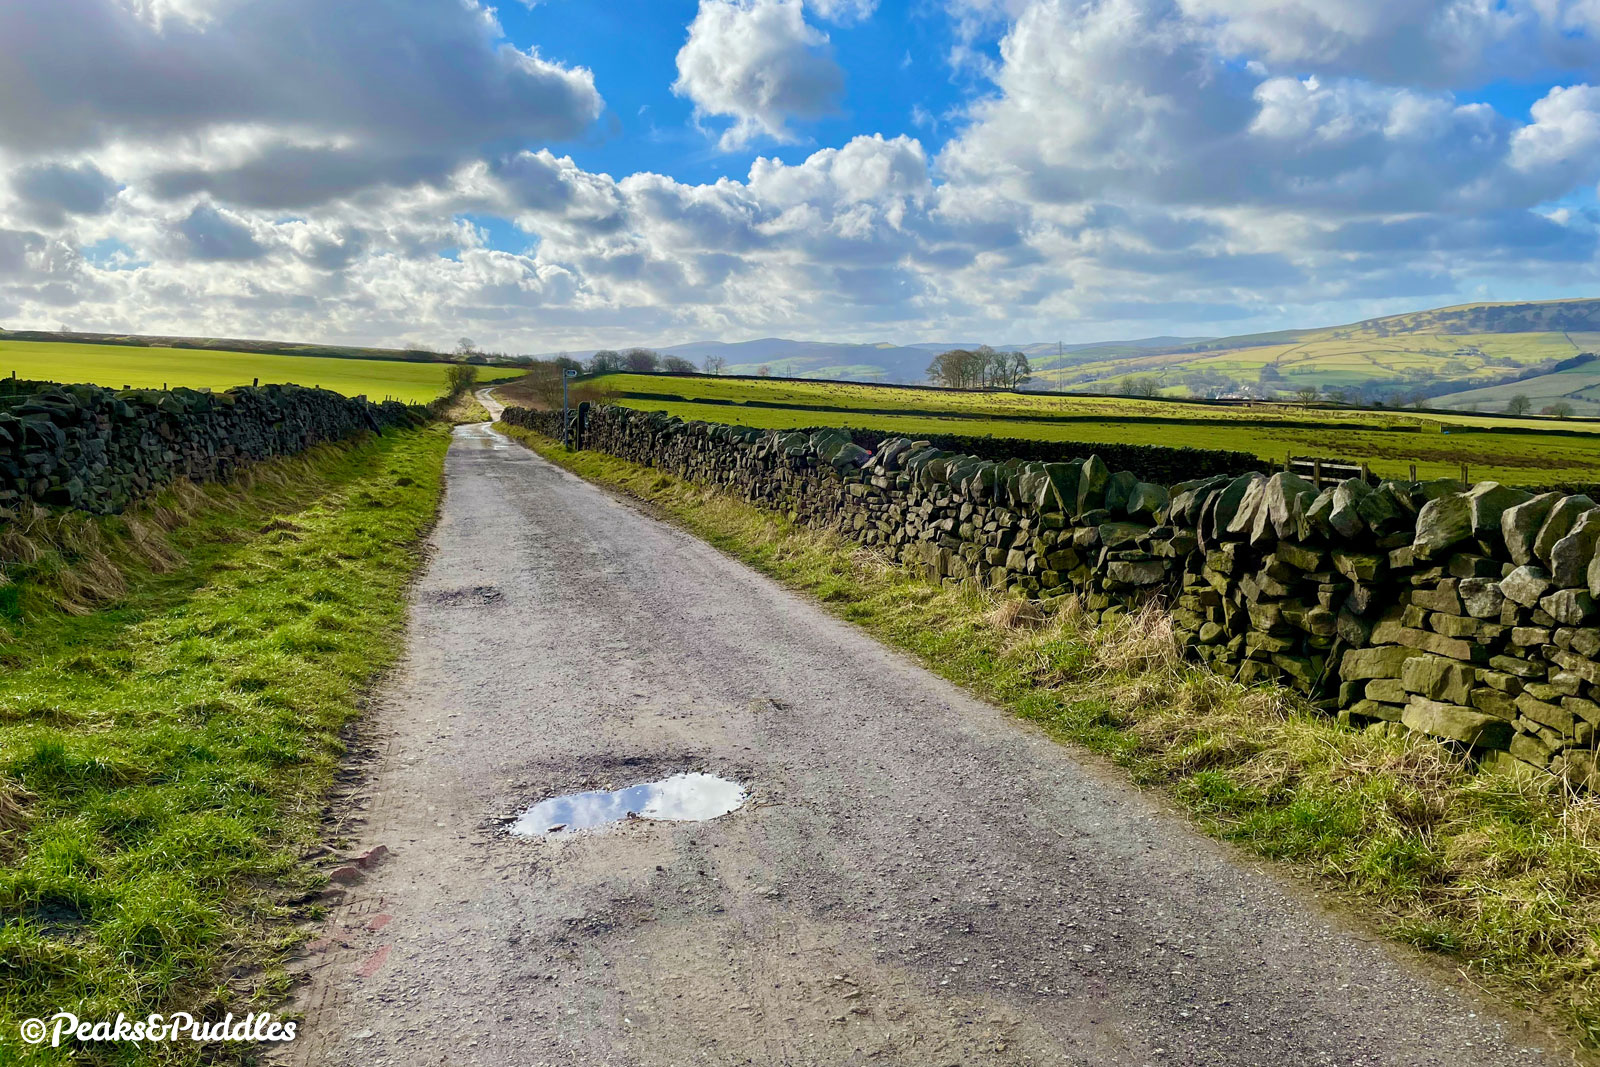 The surface of Over Hill Road begins to gently deteriorate as it leads you towards the peaks of the upper Goyt Valley in the distance, namely Shining Tor and Cats Tor.